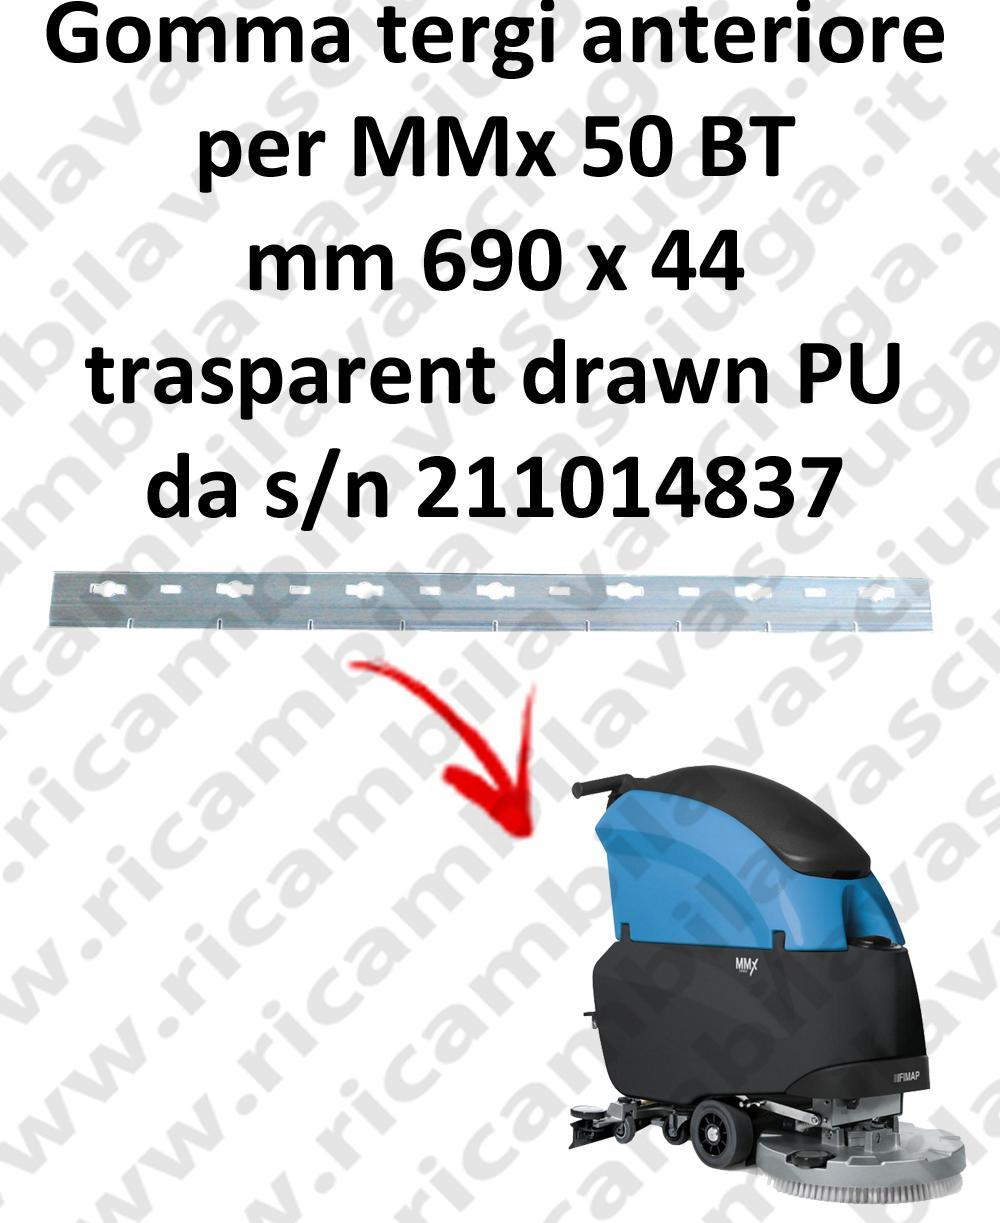 MMx 50 BT Front Squeegee rubber for FIMAP accessories, reaplacement, spare parts,o scrubber dryer squeegee